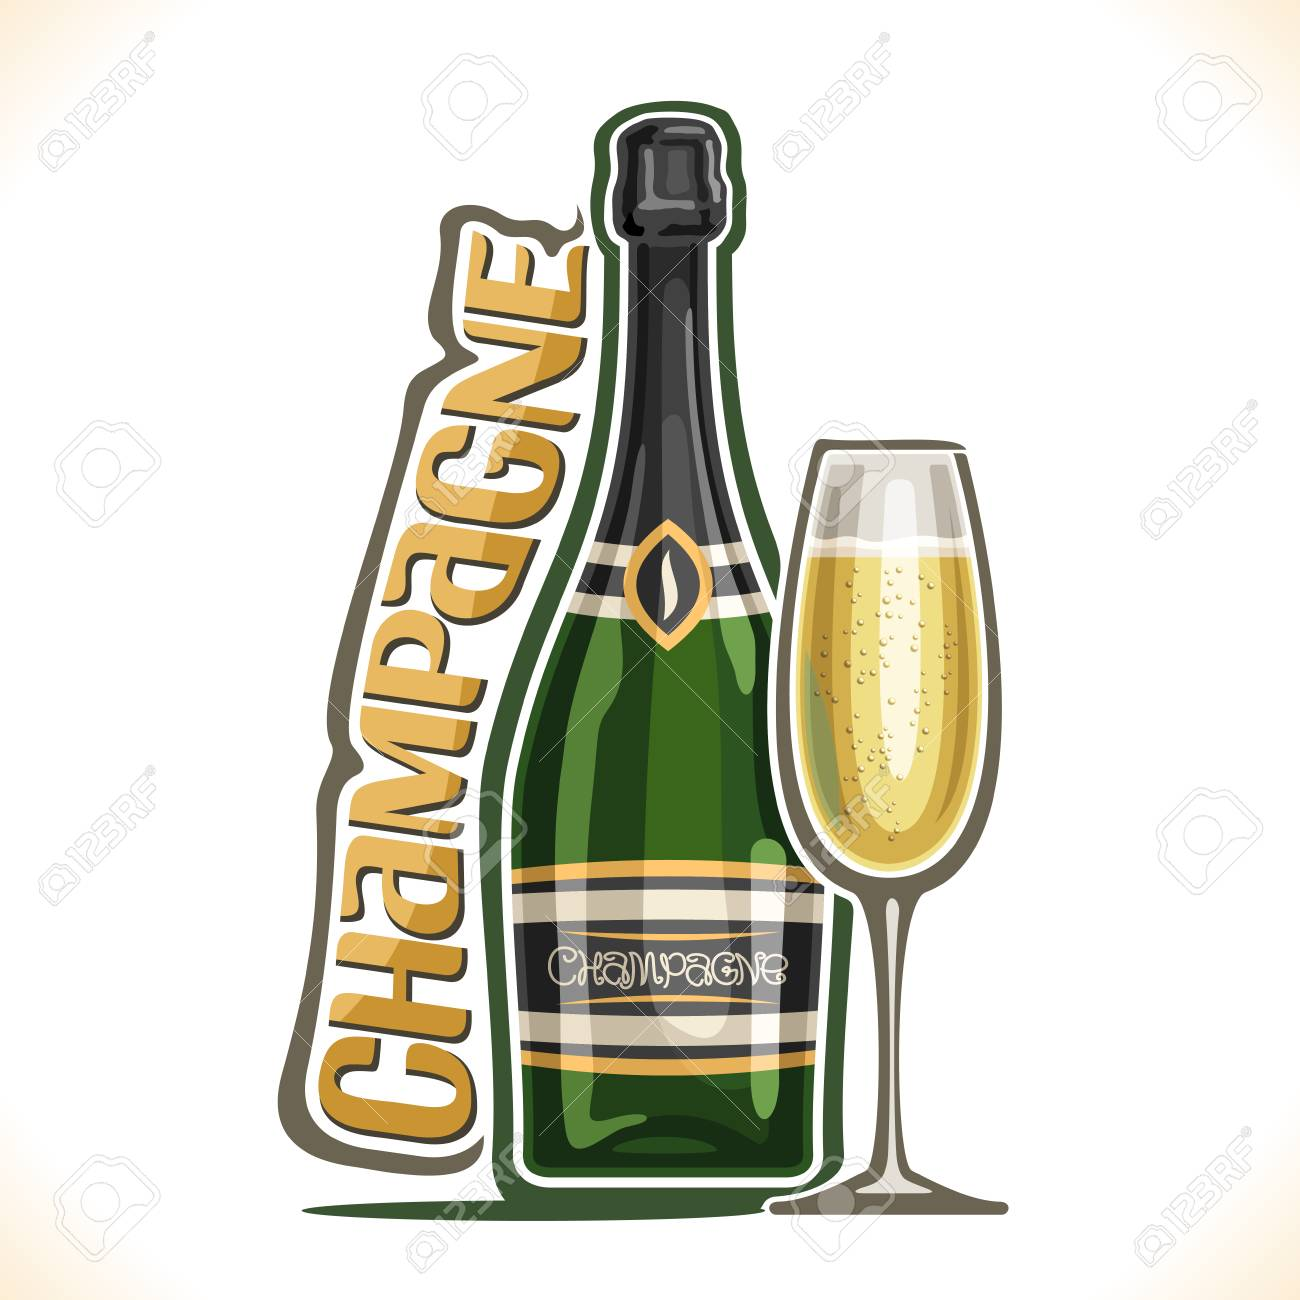 Flute A Champagne Original Vector Illustration Of Alcohol Drink Champagne Poster With Green